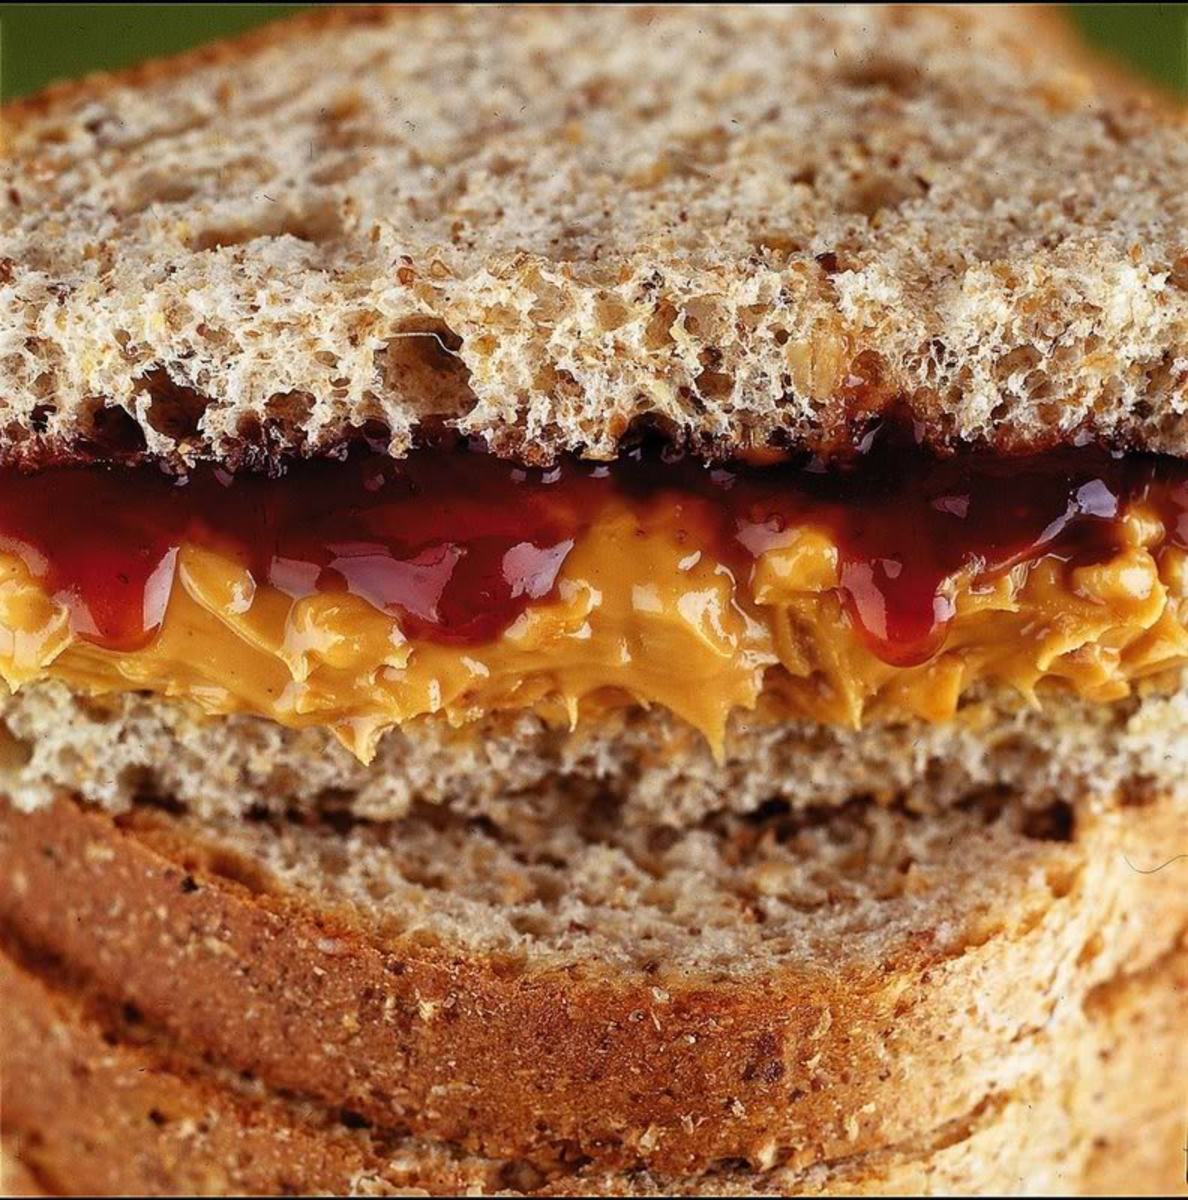 Peanut butter and jelly sandwich on whole wheat bread